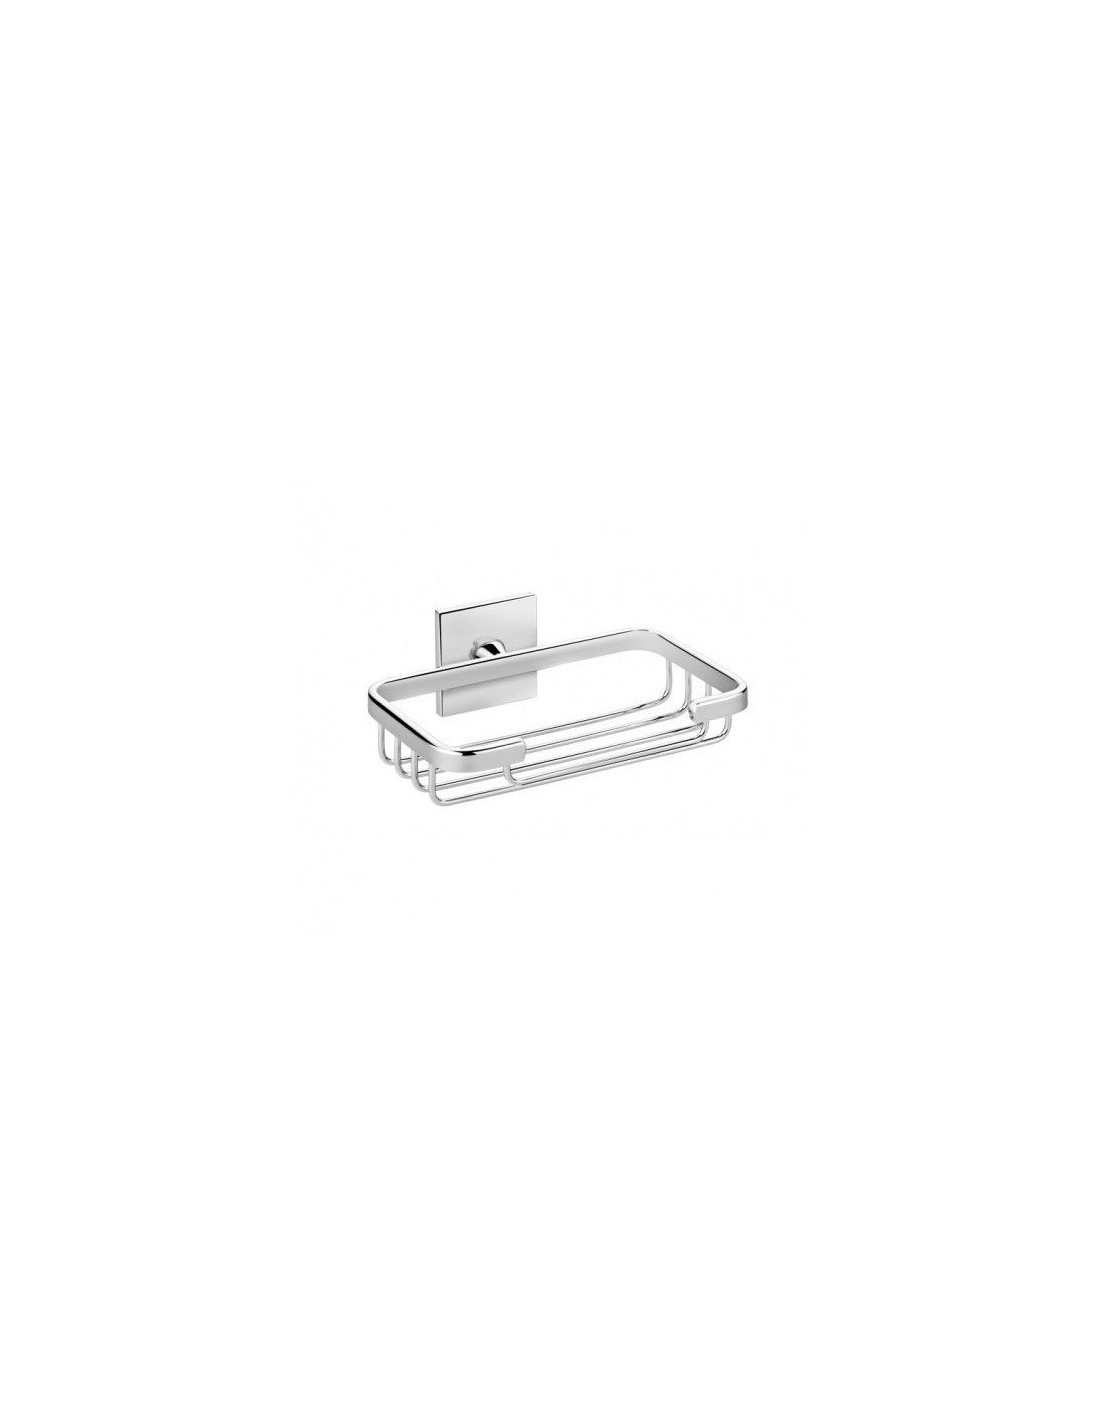 Porte savon filaire coller duo square valente design for Decoration a coller sur porte